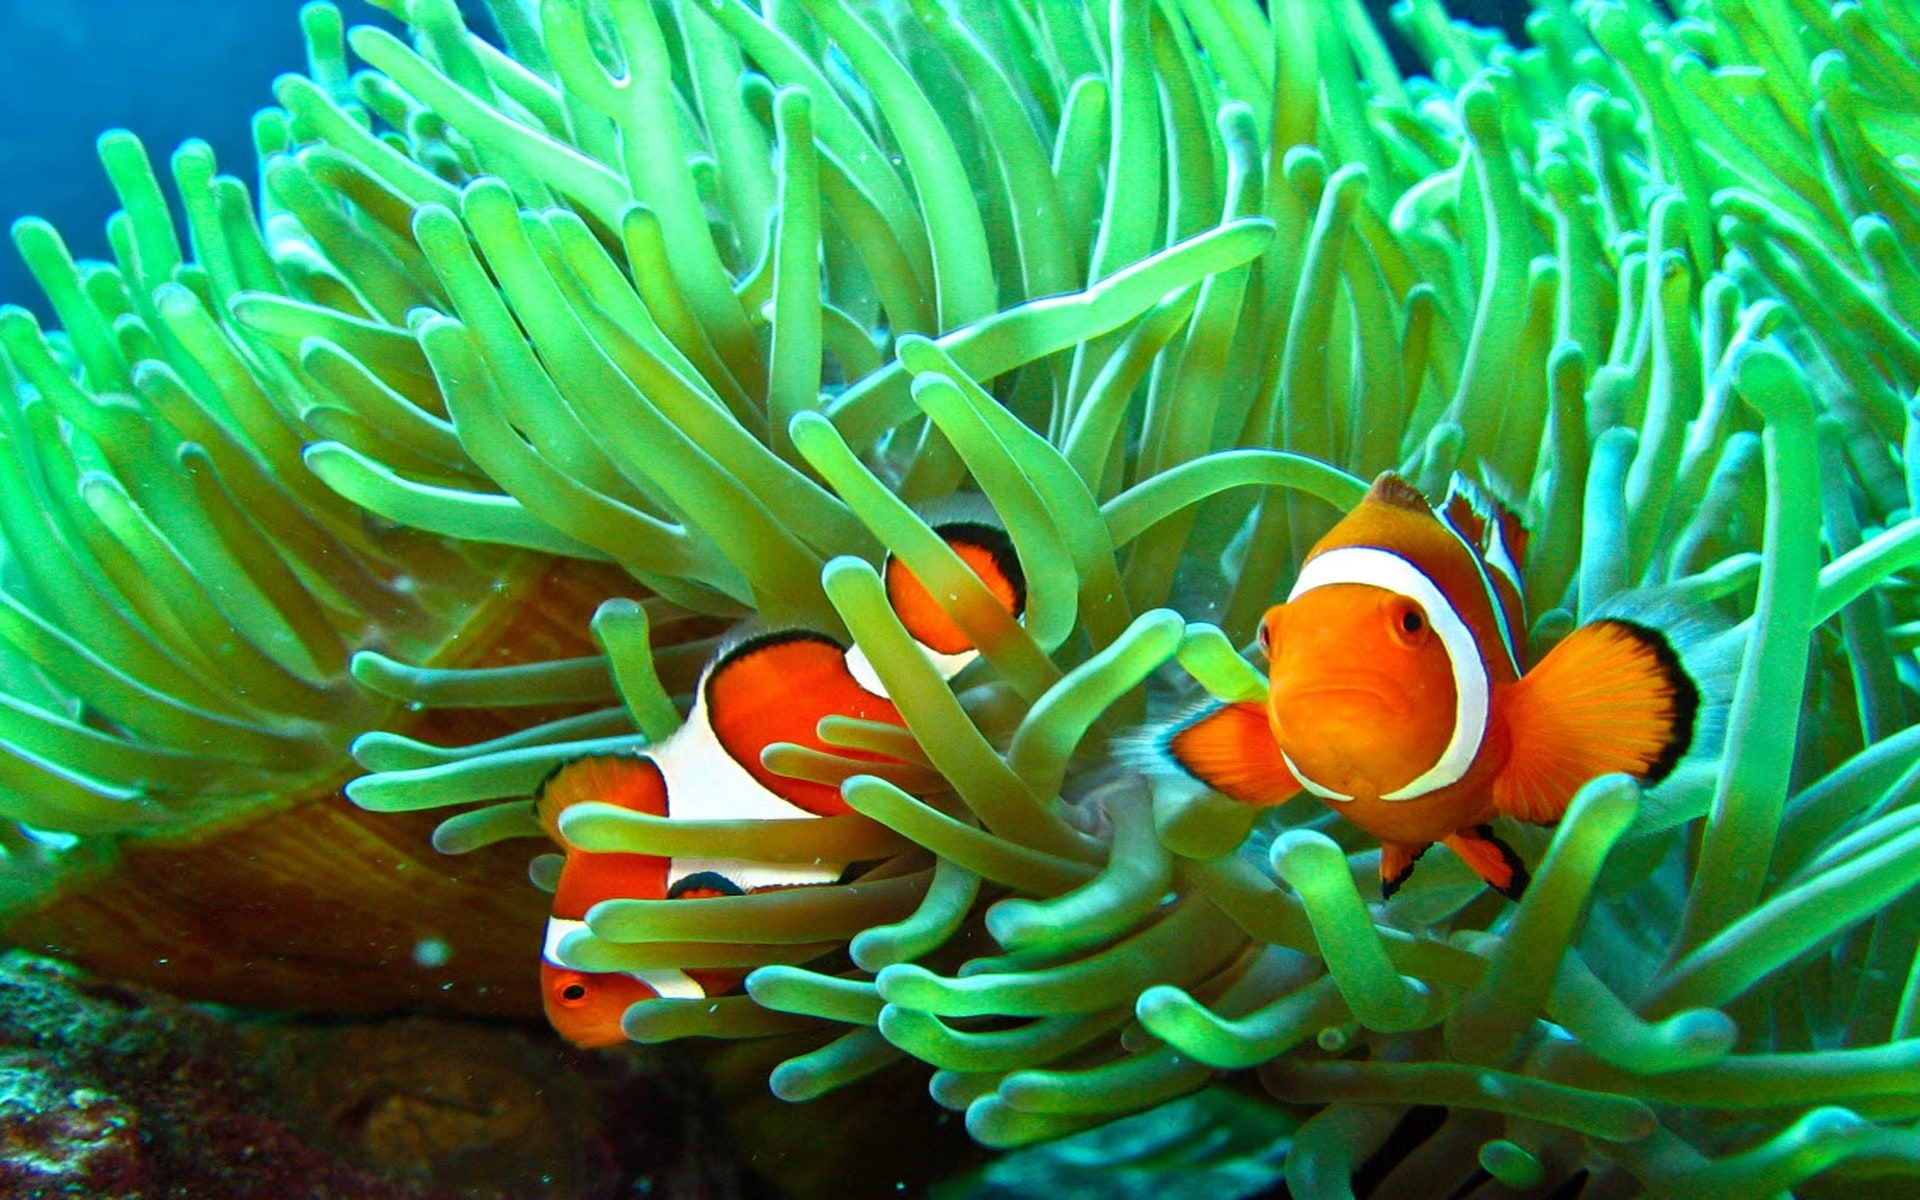 Clown Fish Live Wallpaper Iphone Fitrini S Wallpaper